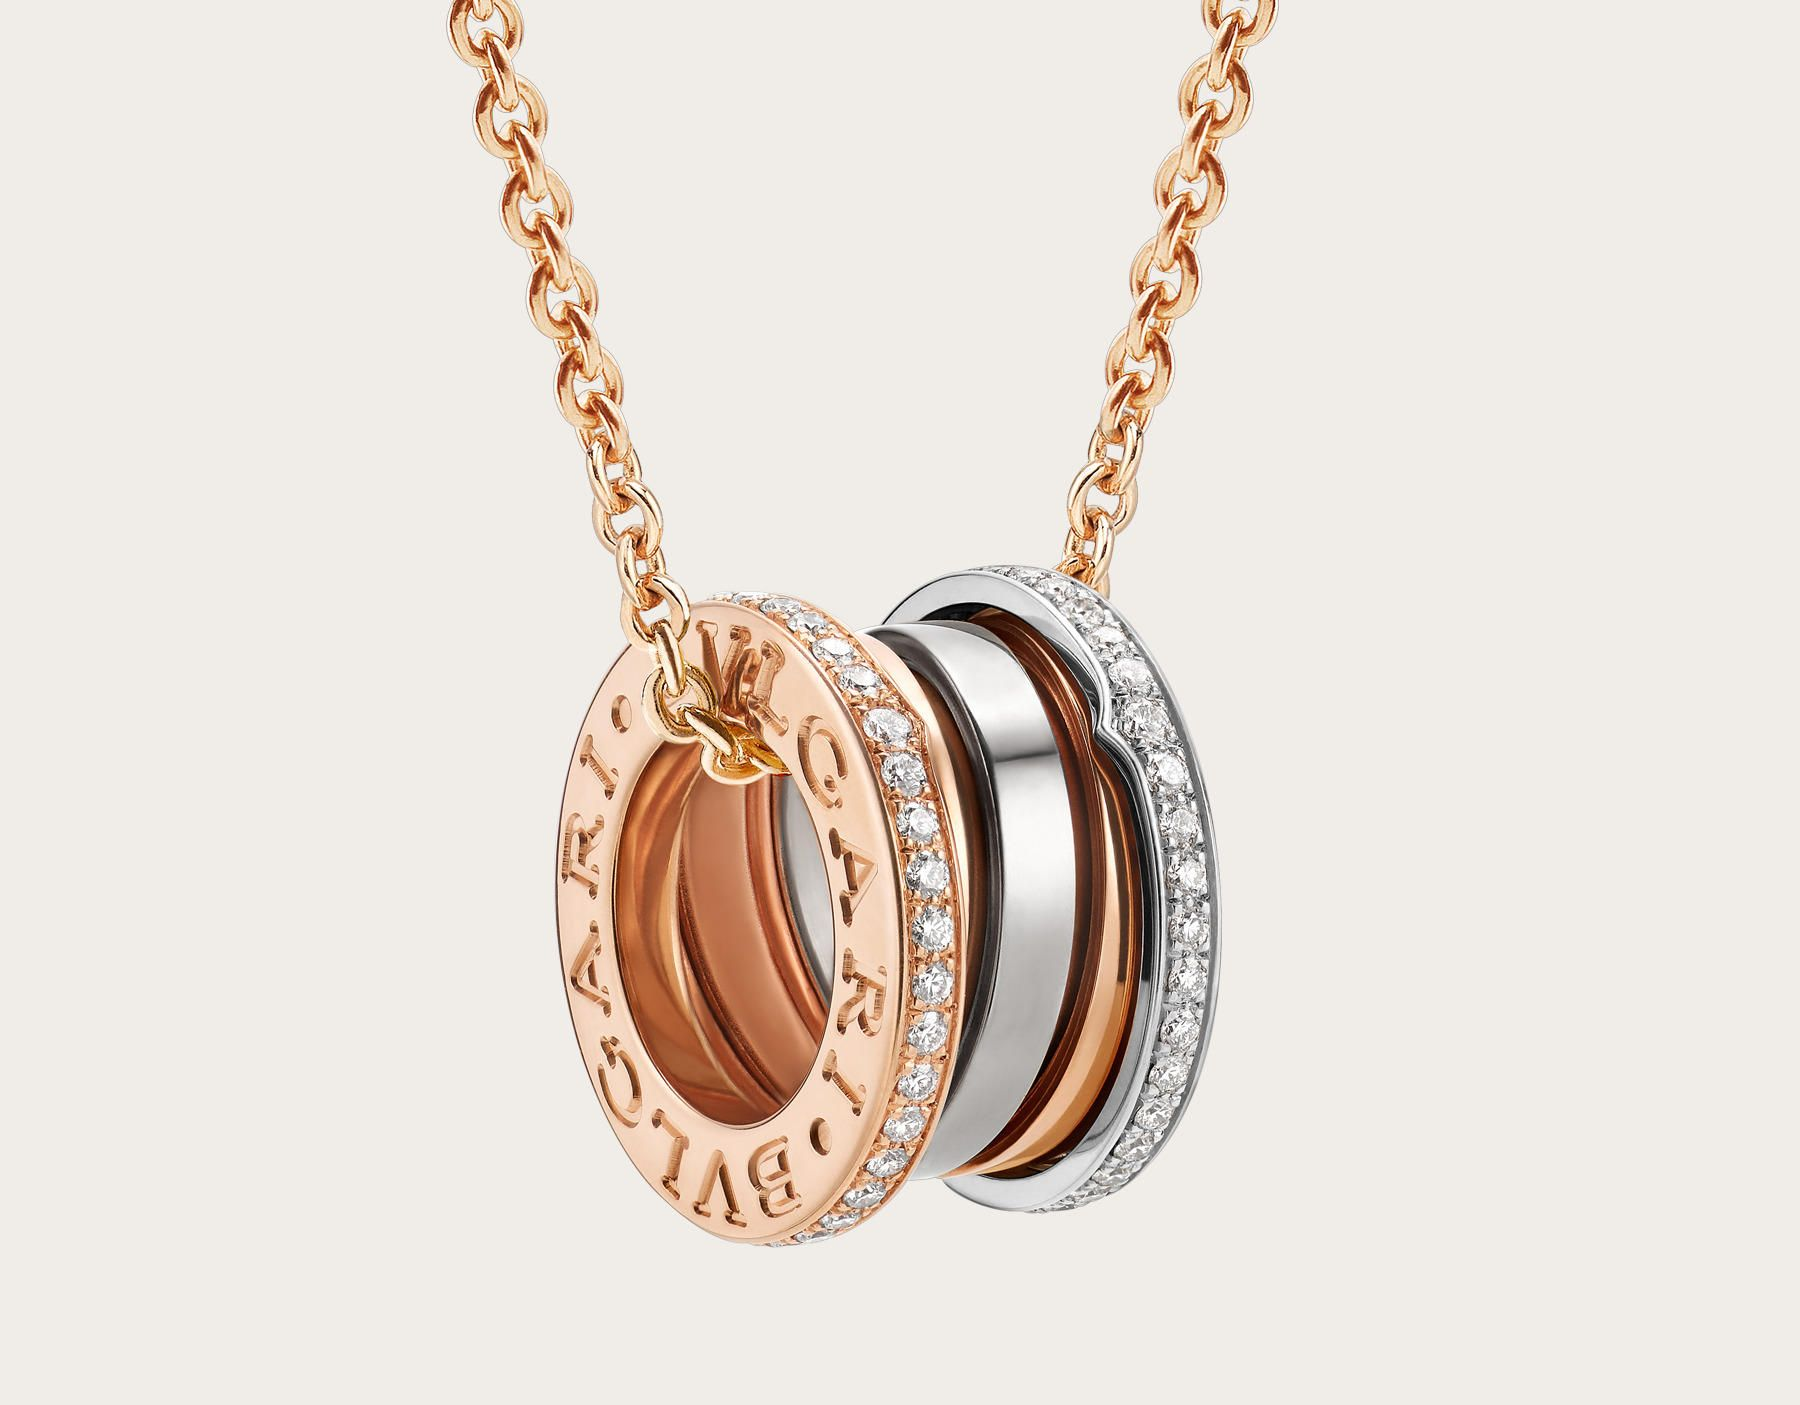 c6daa354cde62 B.zero1 Labyrinth 18kt rose and white gold necklace with pave diamonds.